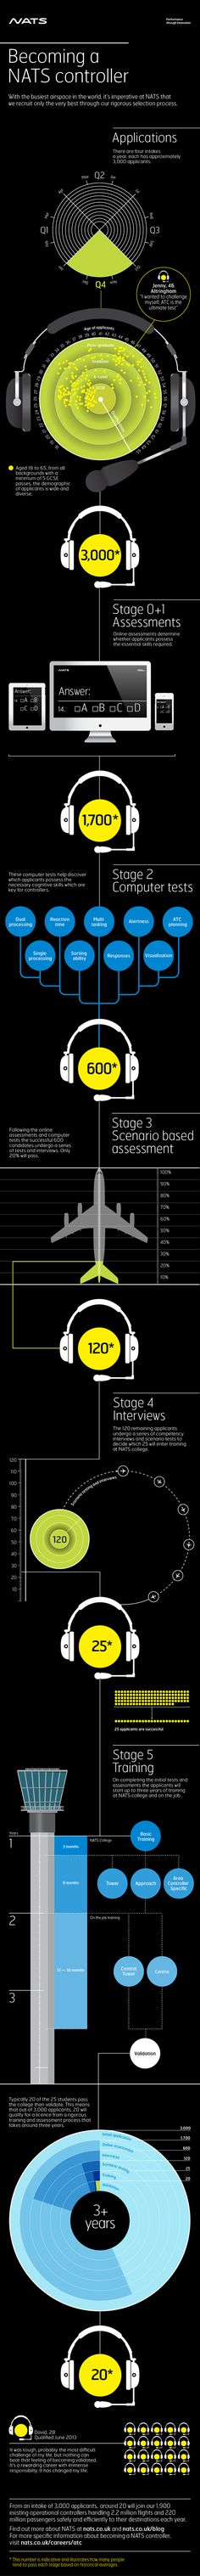 #Infographic : Becoming an Air Traffic Controller - NATS Blog